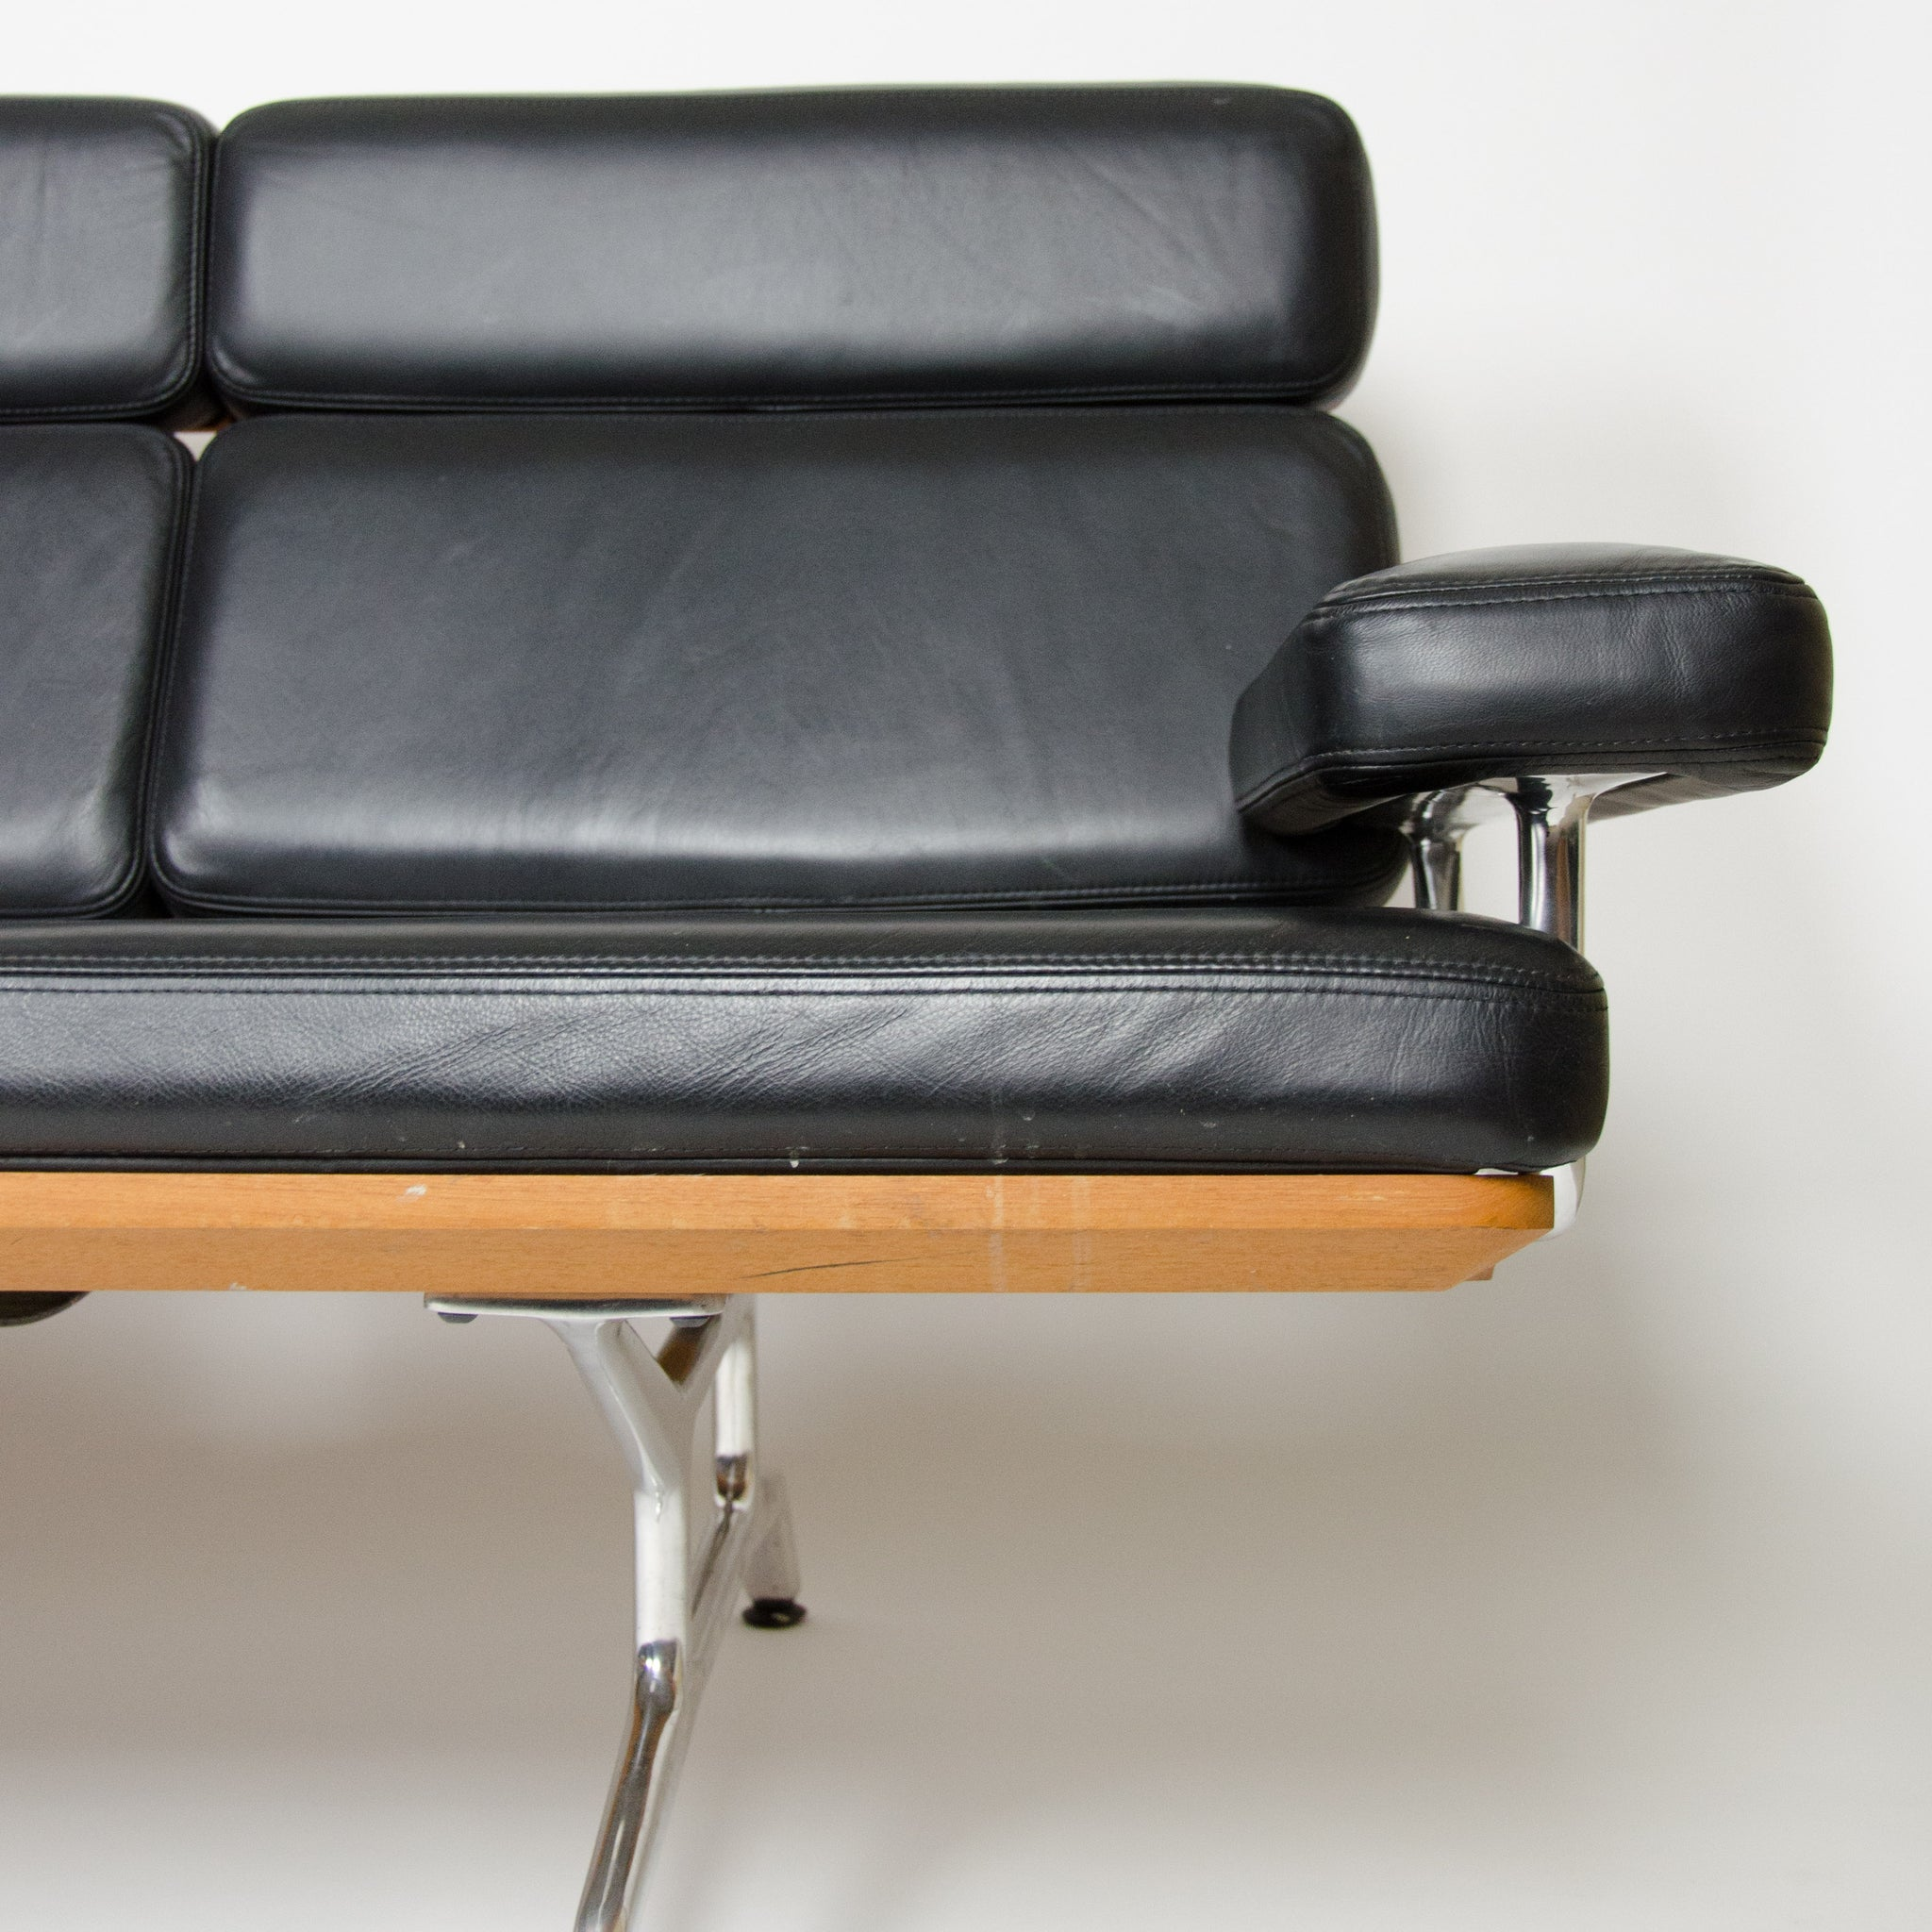 SOLD Eames Herman Miller Three Seater Sofa Teak and Black Leather 2 of 2 MINT!